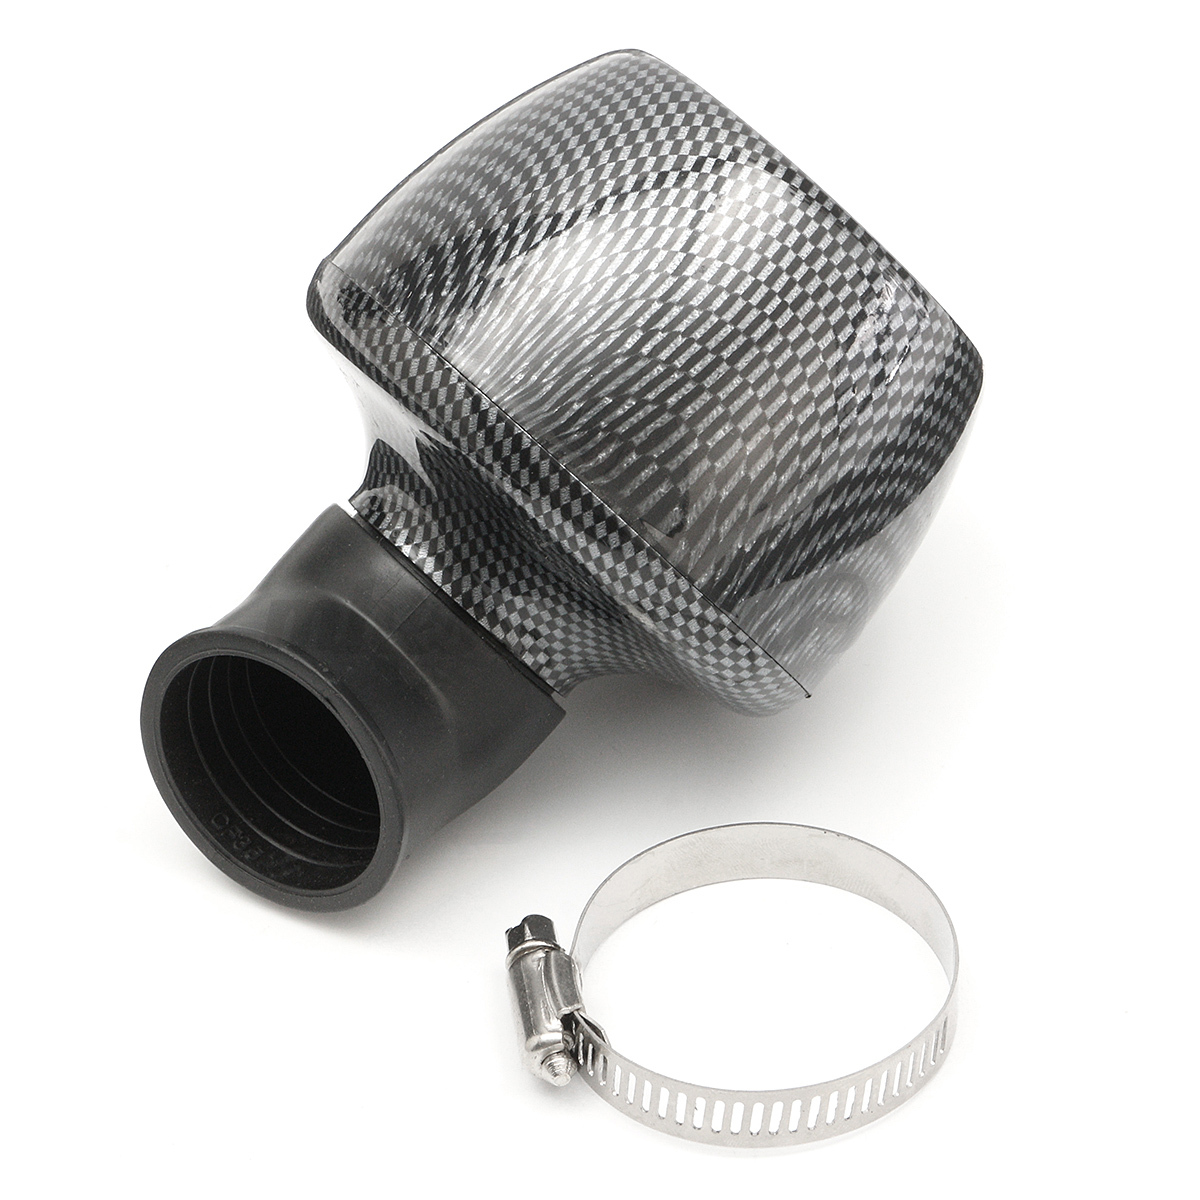 Moped Air Filter : Mm air filter for gy cc scooter moped dirt